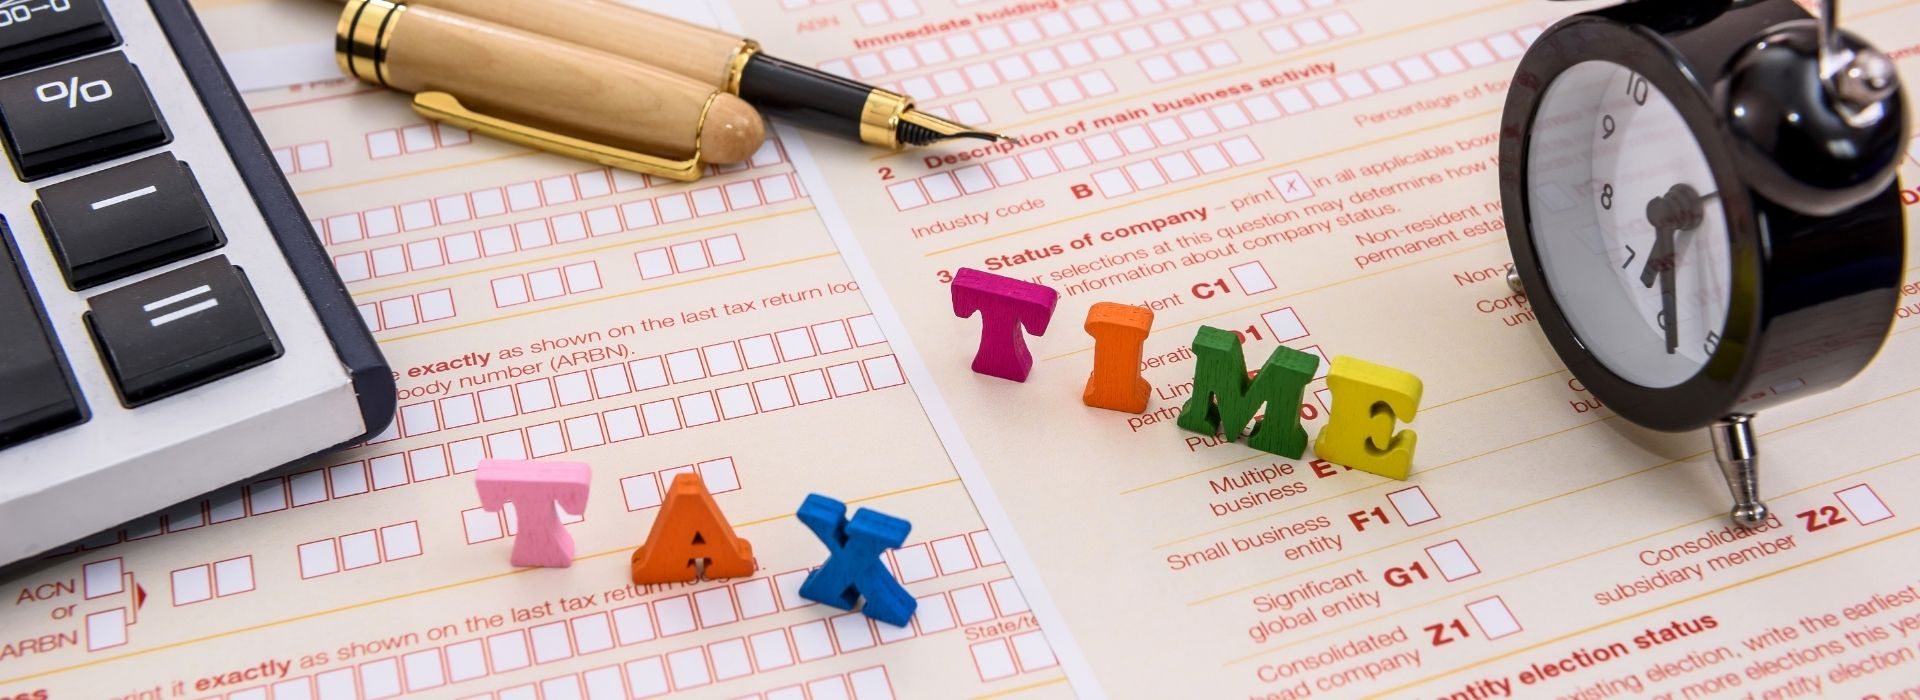 Tax Updates 2021-2022 Financial year and beyond